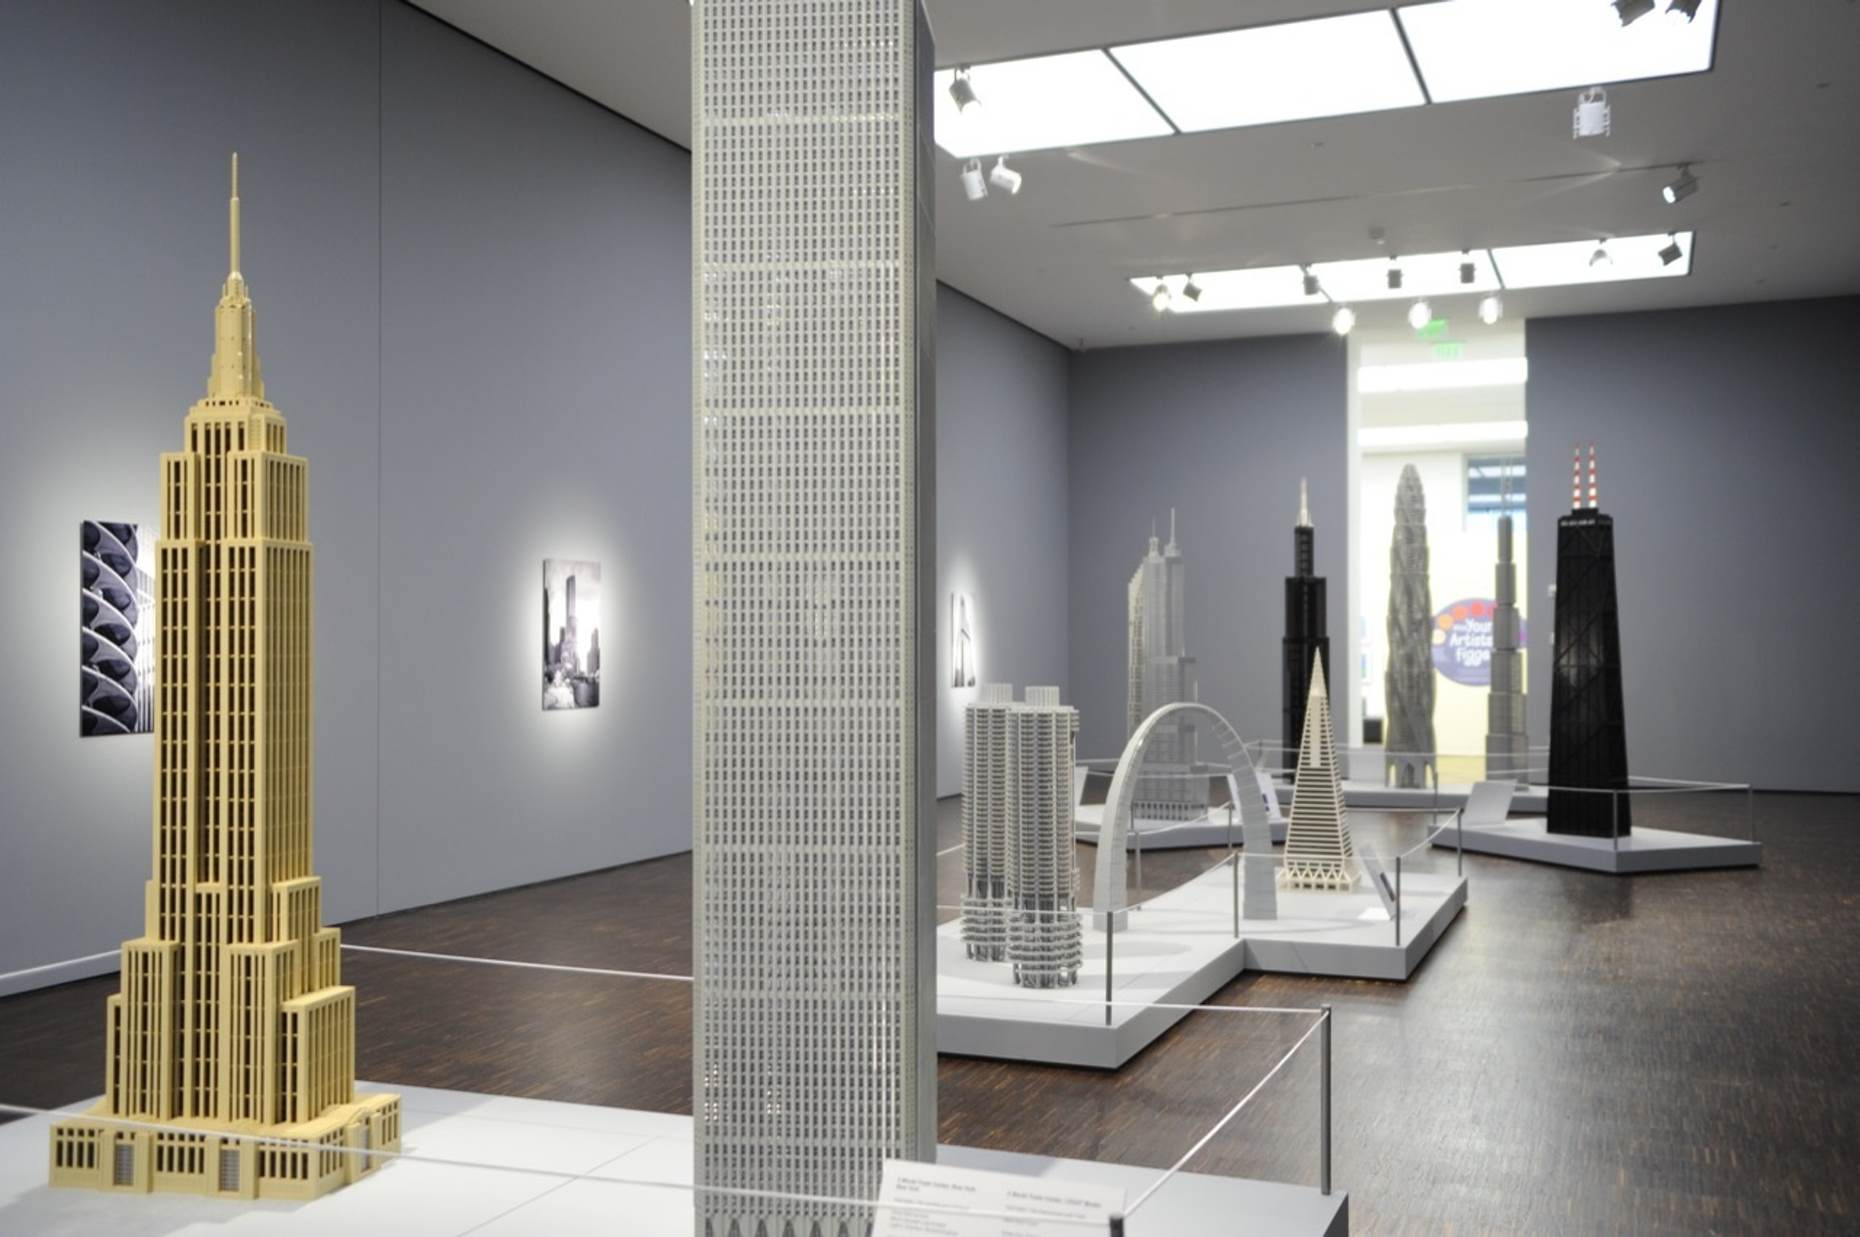 lego-architecture-exhibition-4.jpg